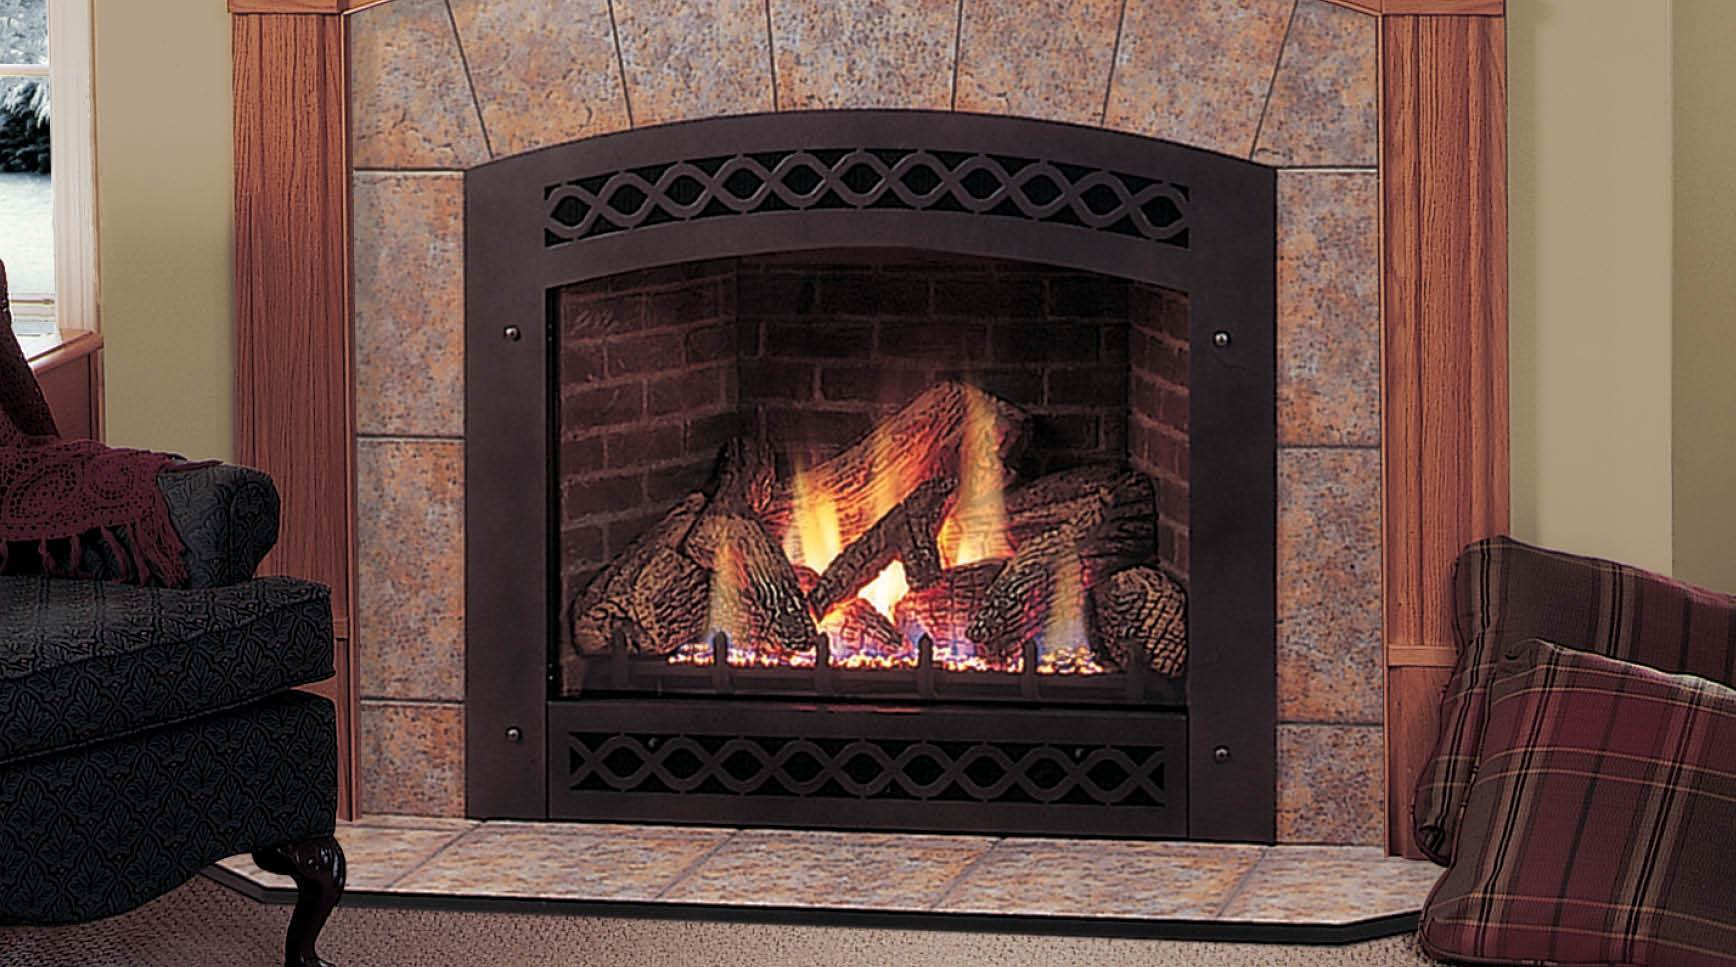 Majestic Outdoor Fireplace Gas Fireplace Santa Rosa Gas Fireplace Insert Warming